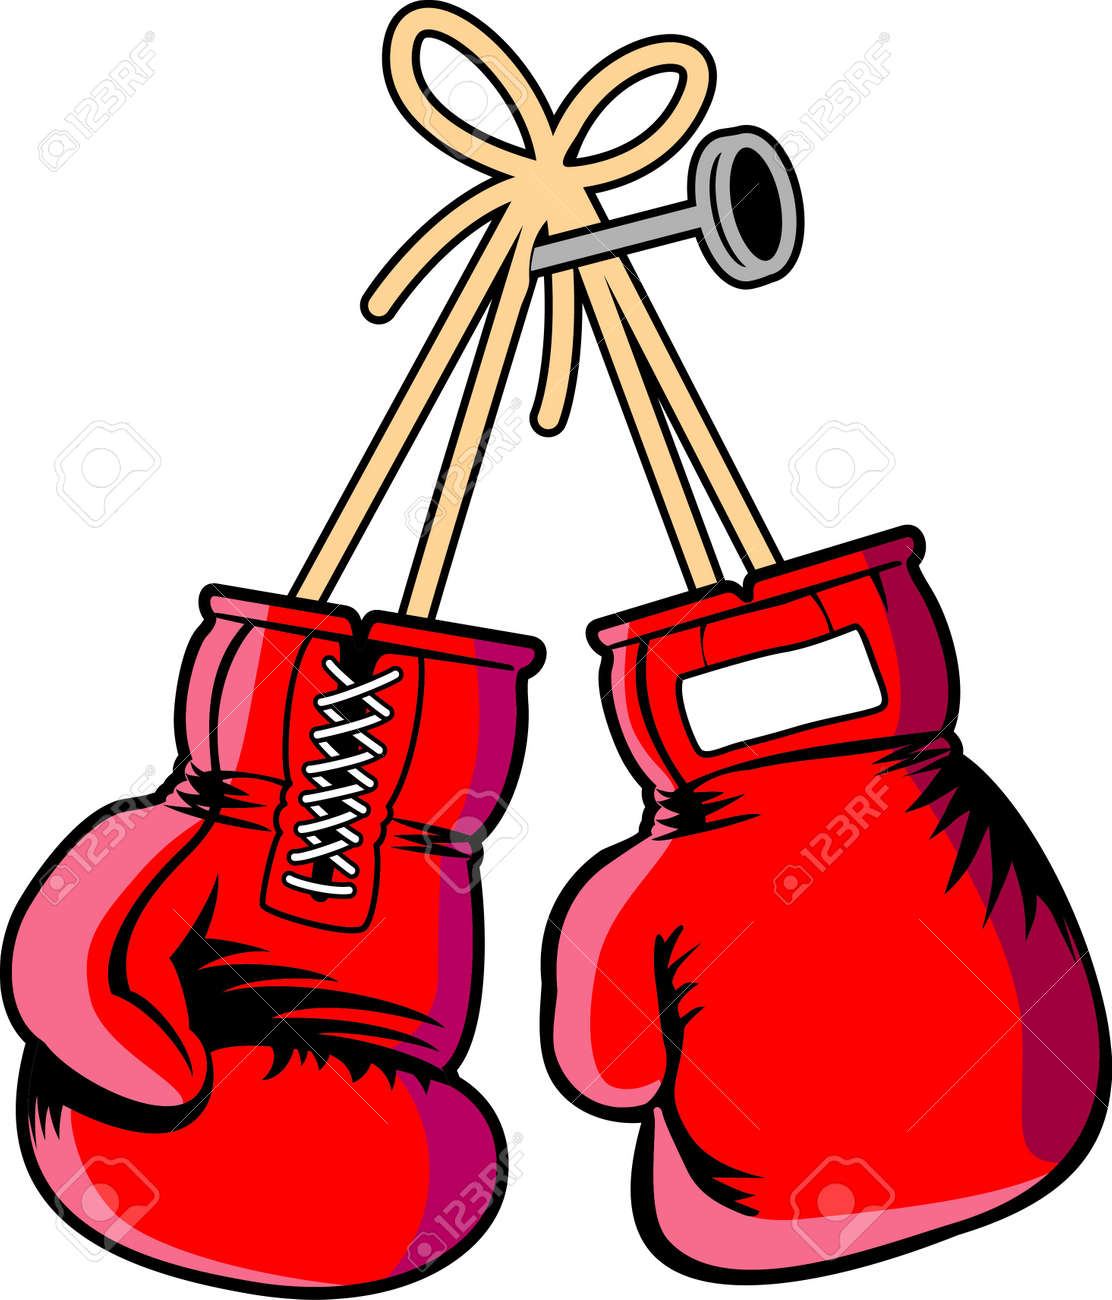 14 103 boxing glove stock illustrations cliparts and royalty free rh 123rf com boxing gloves clip art black and white boxing glove clipart free